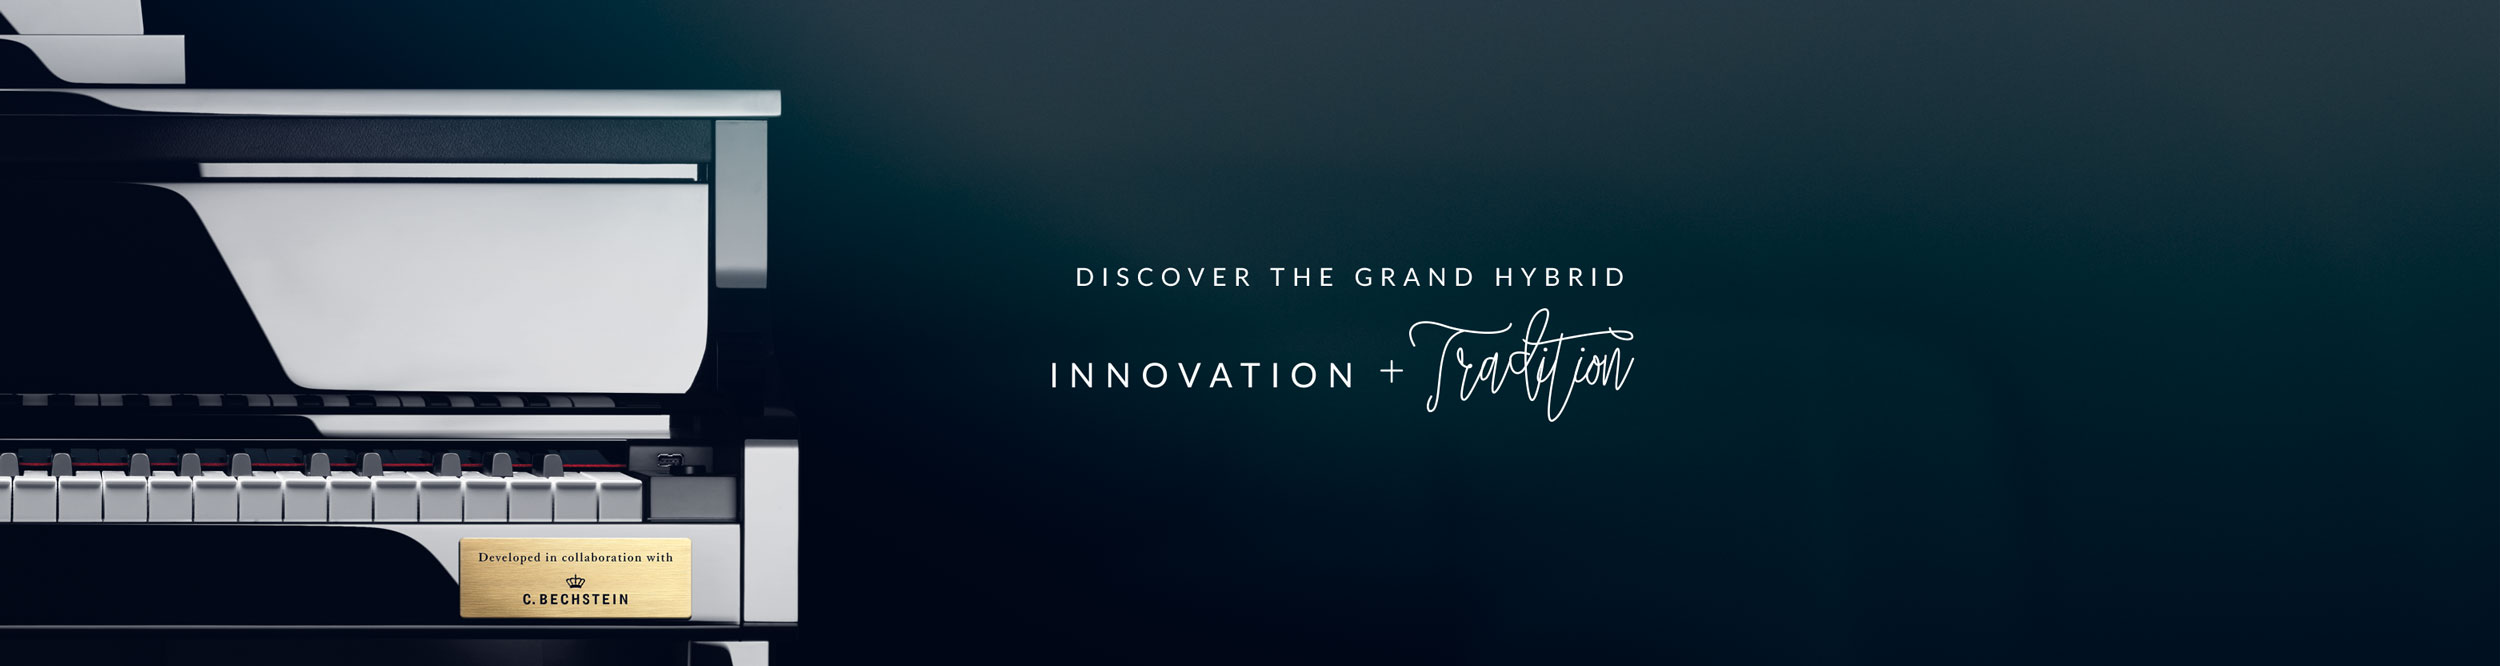 Discover-Grand-Hybrid-Banners.jpg